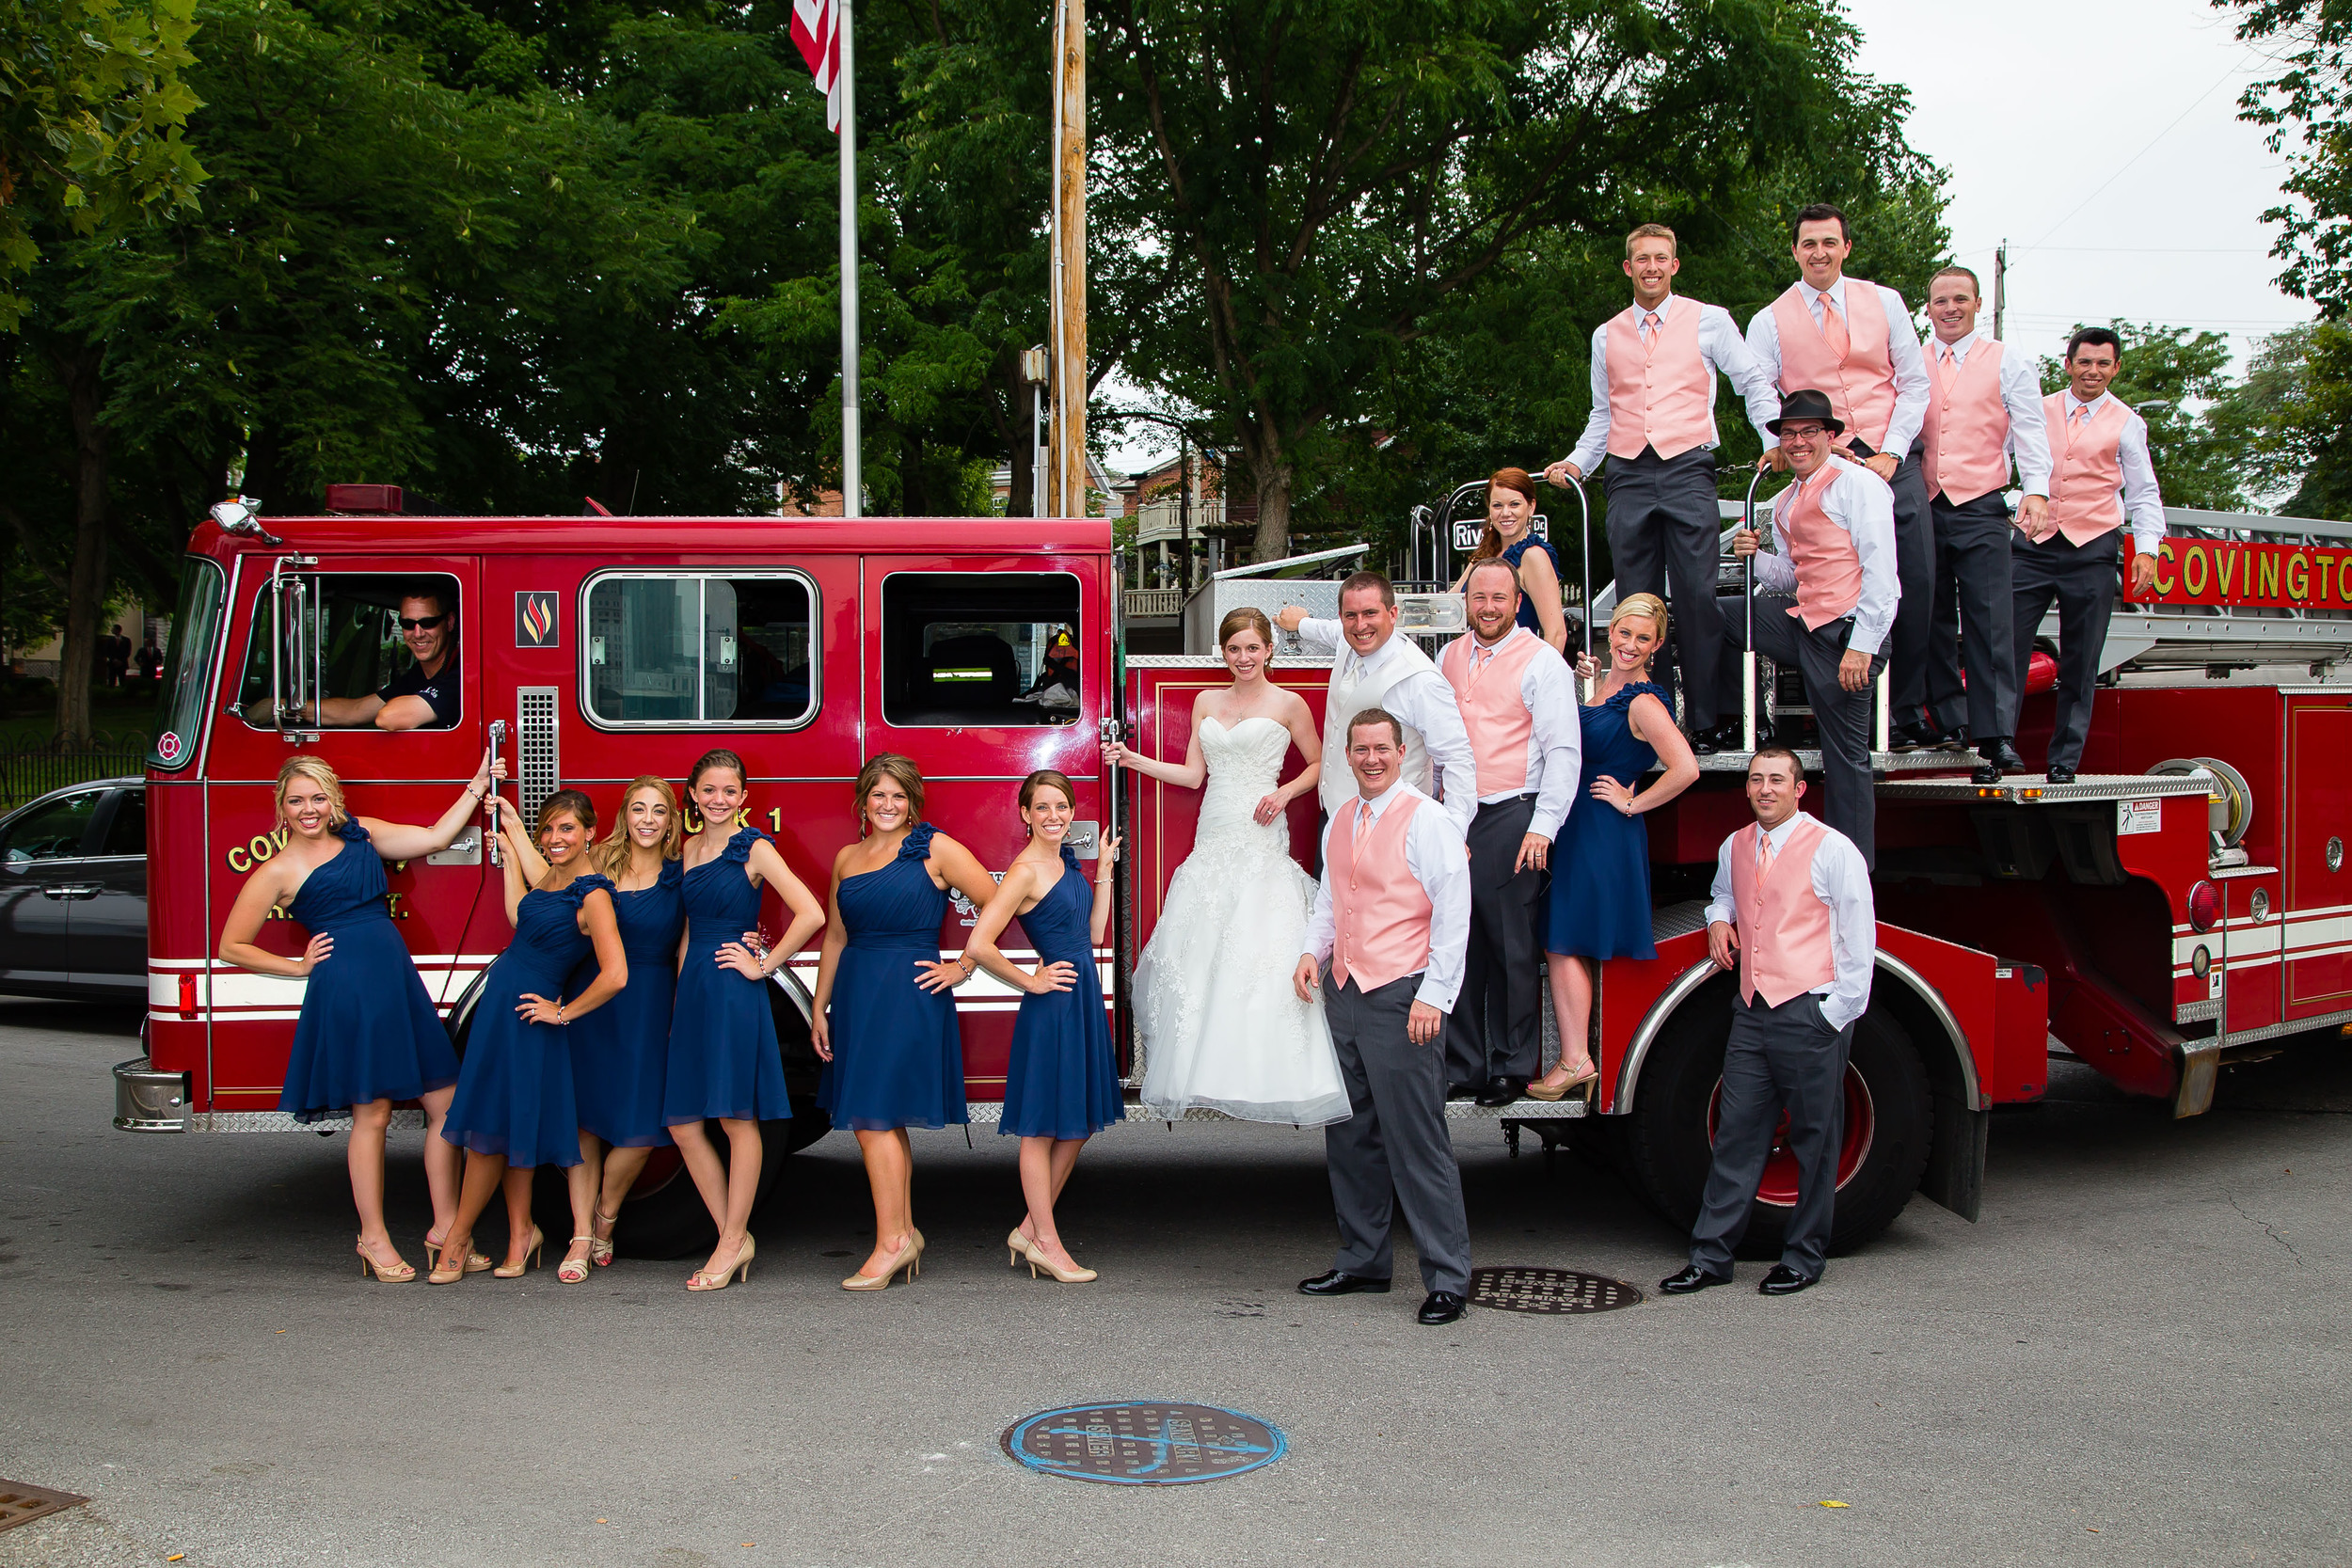 Wedding photograph of a bride and groom with wedding party in front of a fire truck